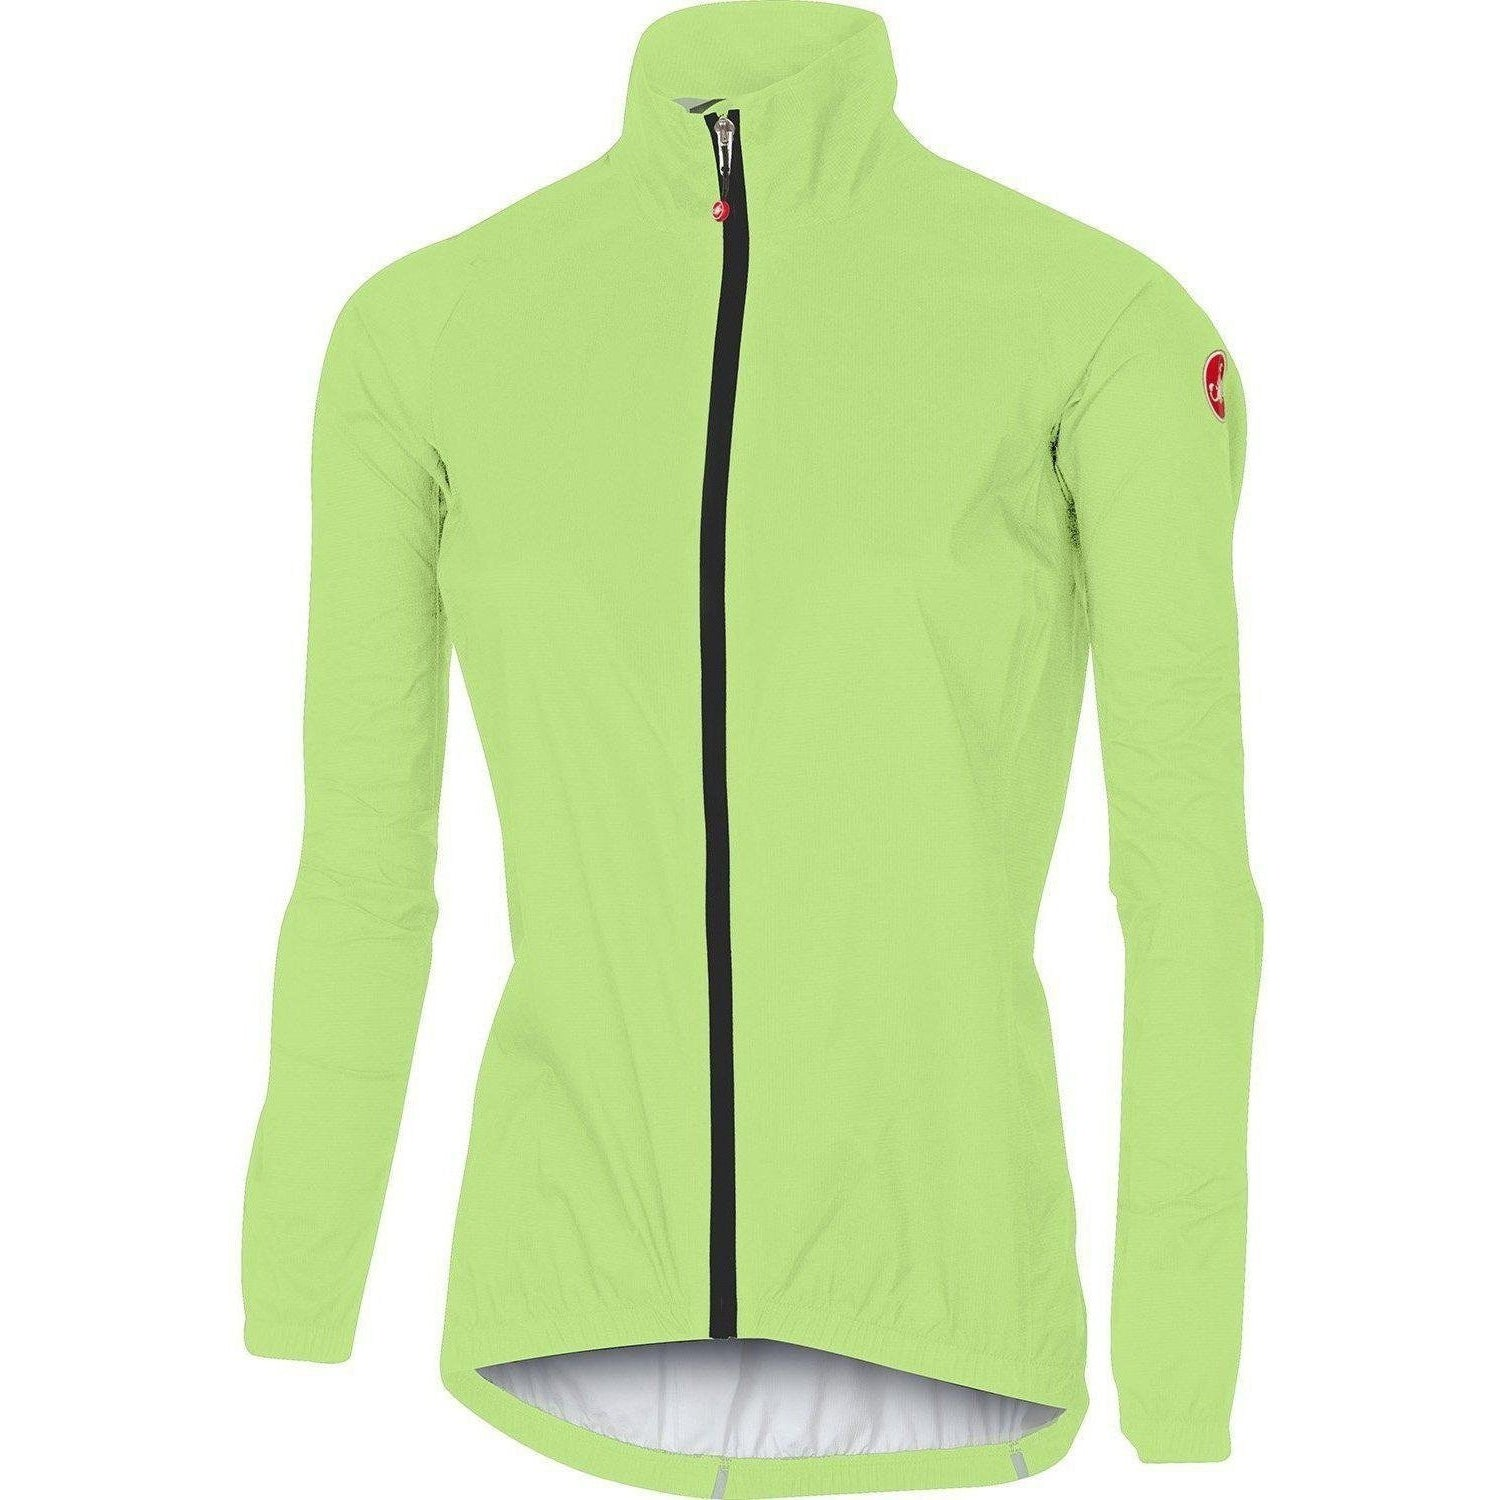 Castelli-Castelli Women's Emergency Rain Jacket-Yellow Fluo-XS-CS175380321-saddleback-elite-performance-cycling